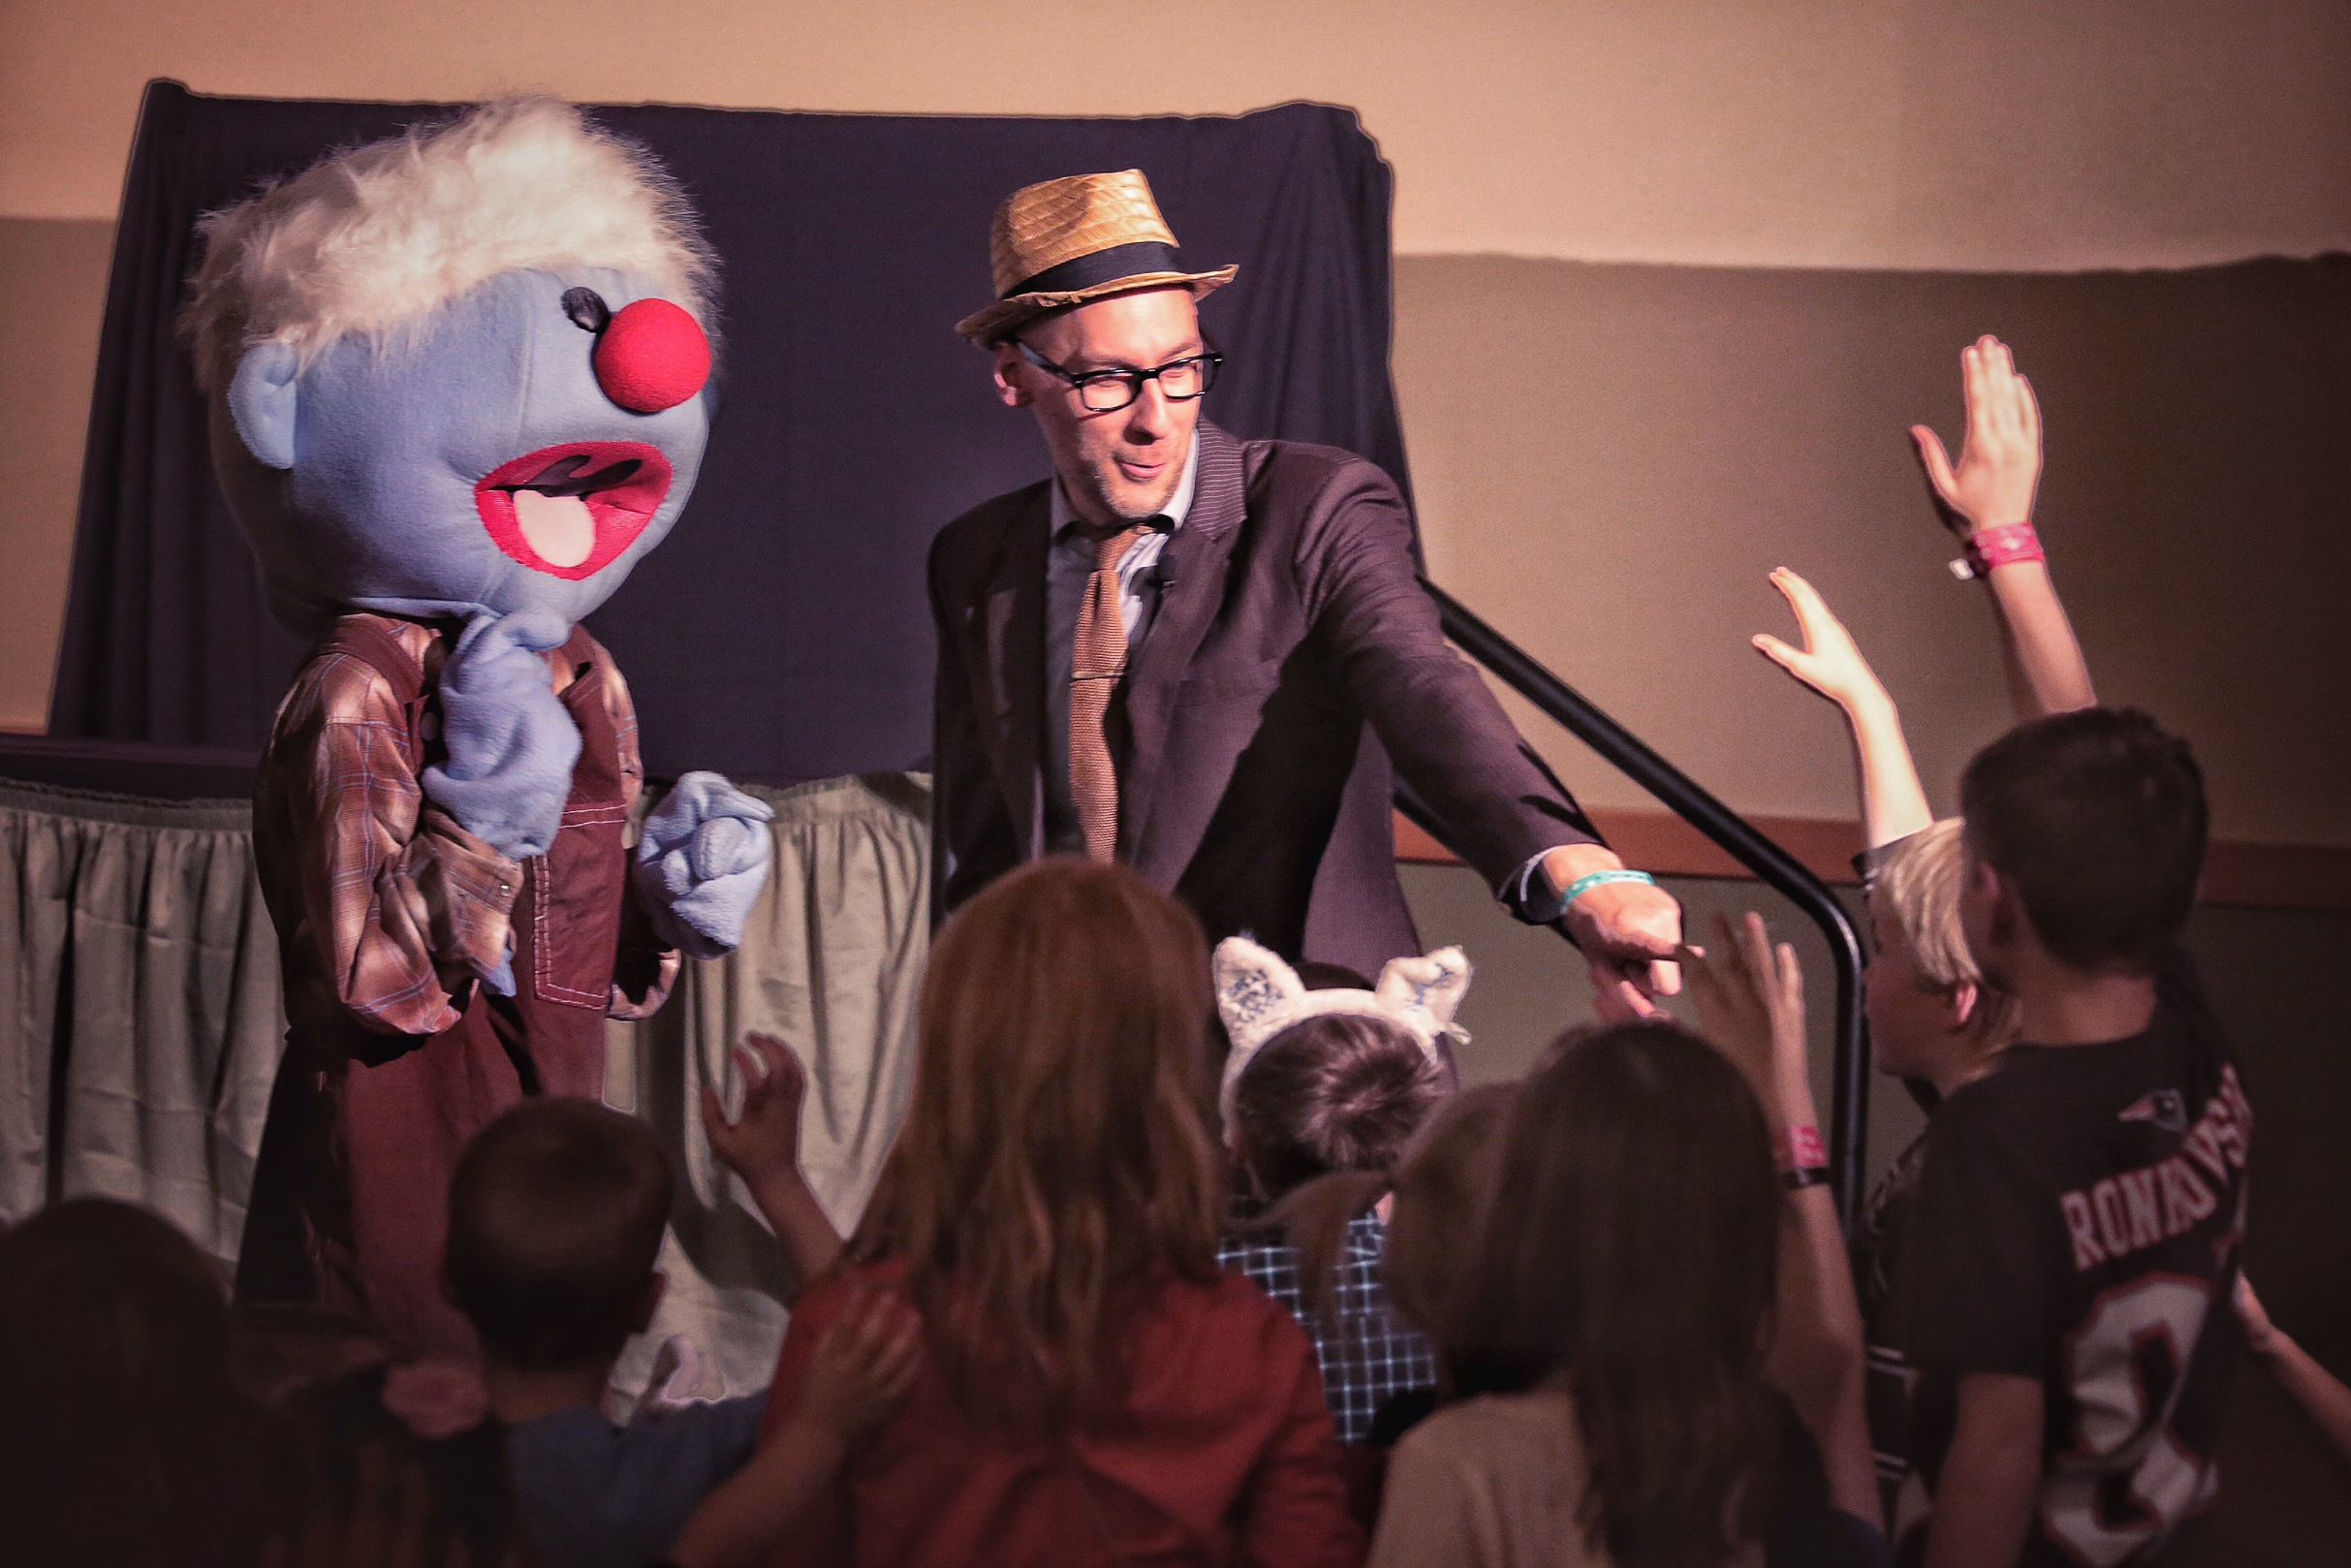 On Saturday evening at the Winter Family Weekend, Jelly and Mr. Jonathan held a fun game show for all the kids and families in attendance. Games, Bible trivia questions, songs and dancing were enjoyed by everyone who came to the show!